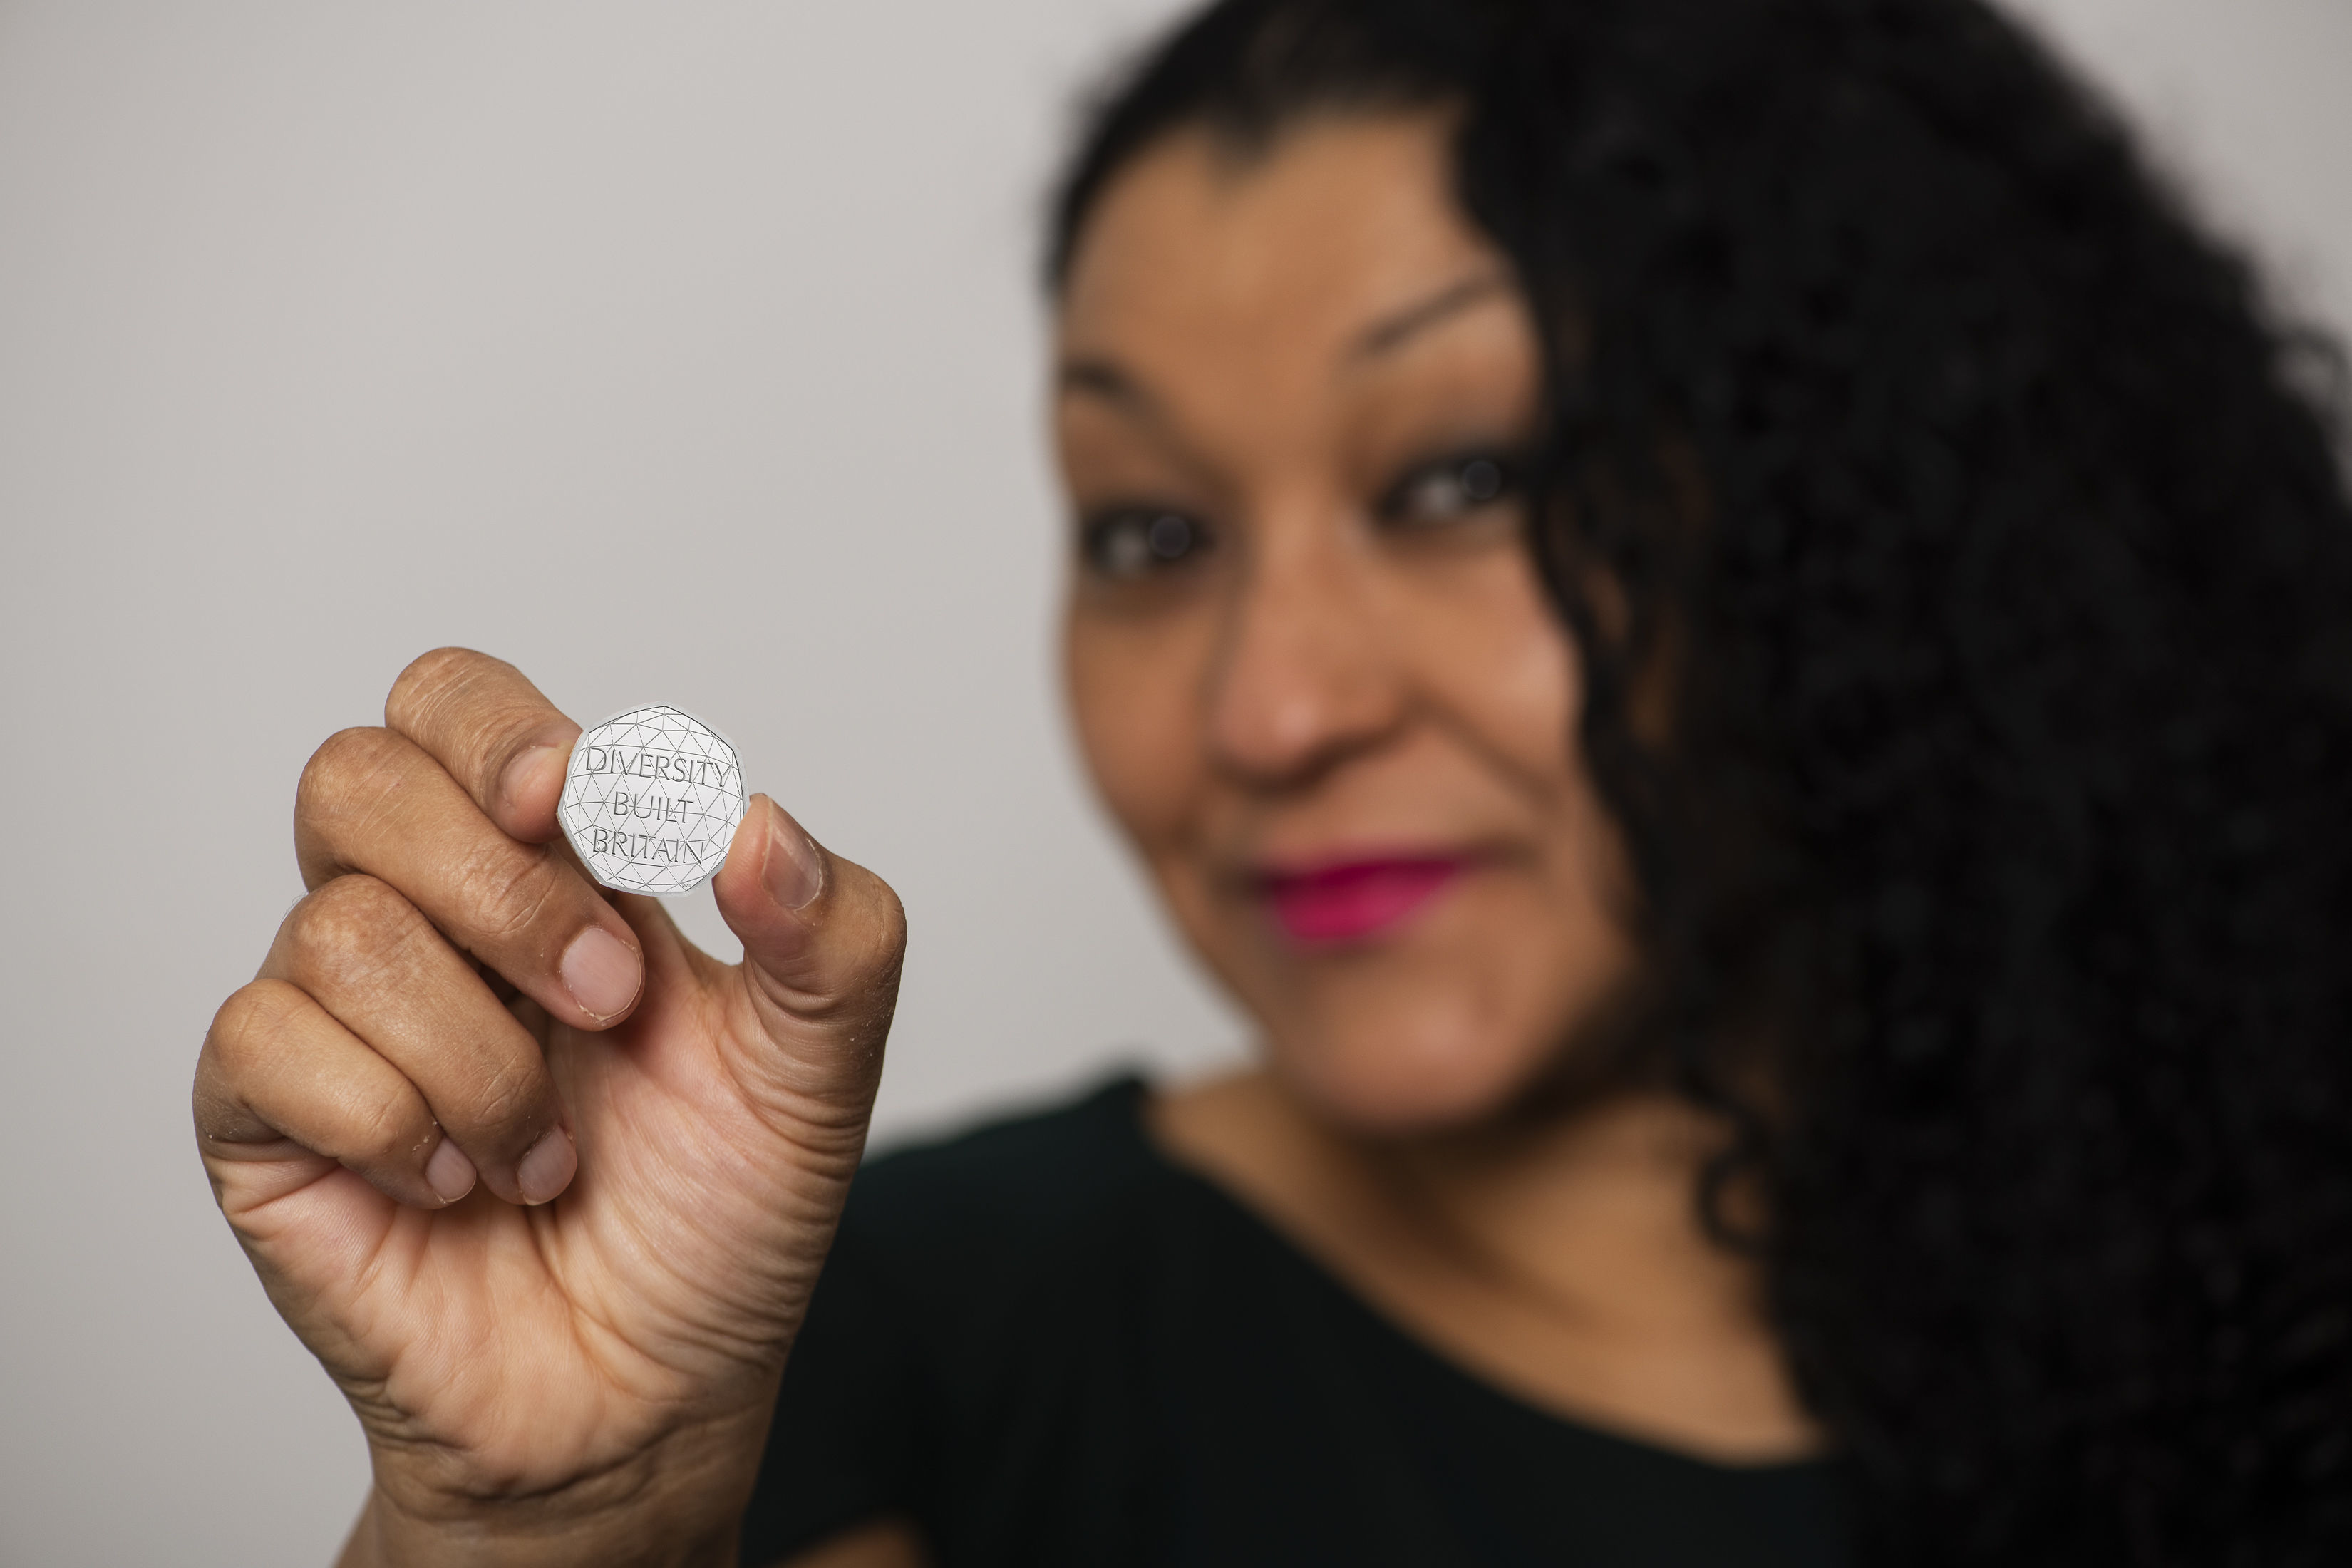 Coin designer Dominique Evans with the new 50p piece